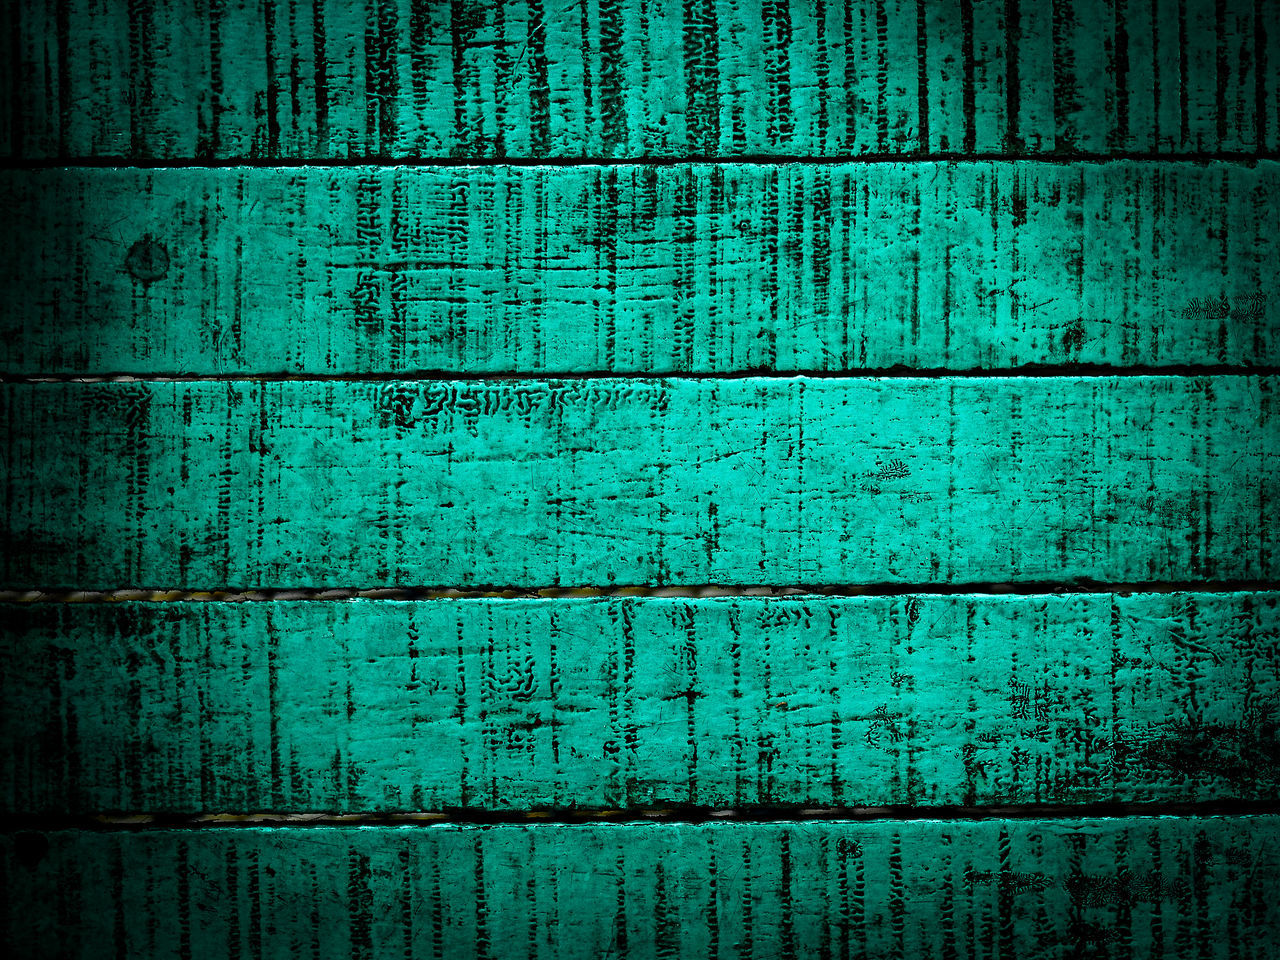 backgrounds, wood - material, dirty, textured, old, weathered, old-fashioned, retro styled, green color, blue, paint, wood paneling, pattern, abstract, cracked, antique, vignette, wood grain, close-up, hardwood, no people, outdoors, day